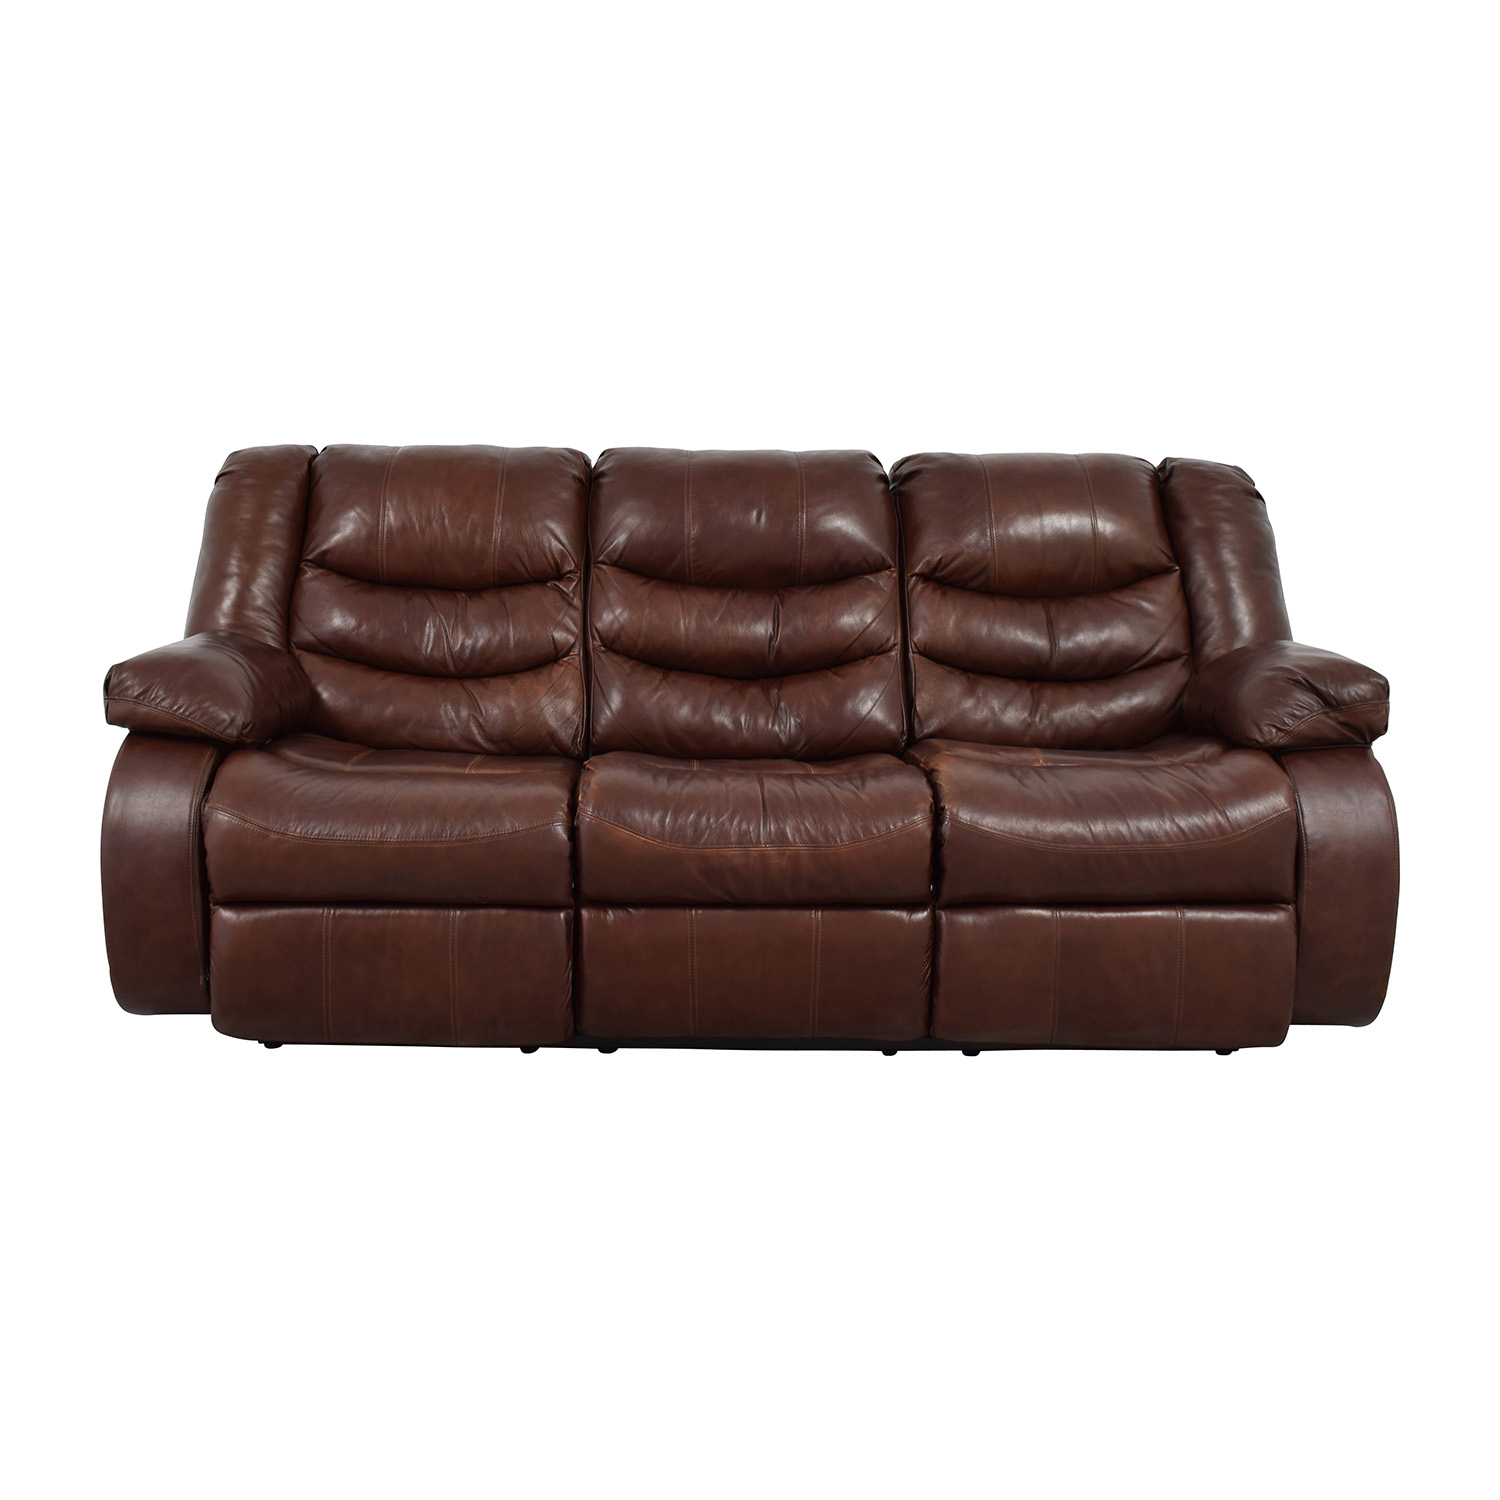 buy Ashley Furniture Large Brown Leather Reclining Couch Ashleys Furniture Classic Sofas